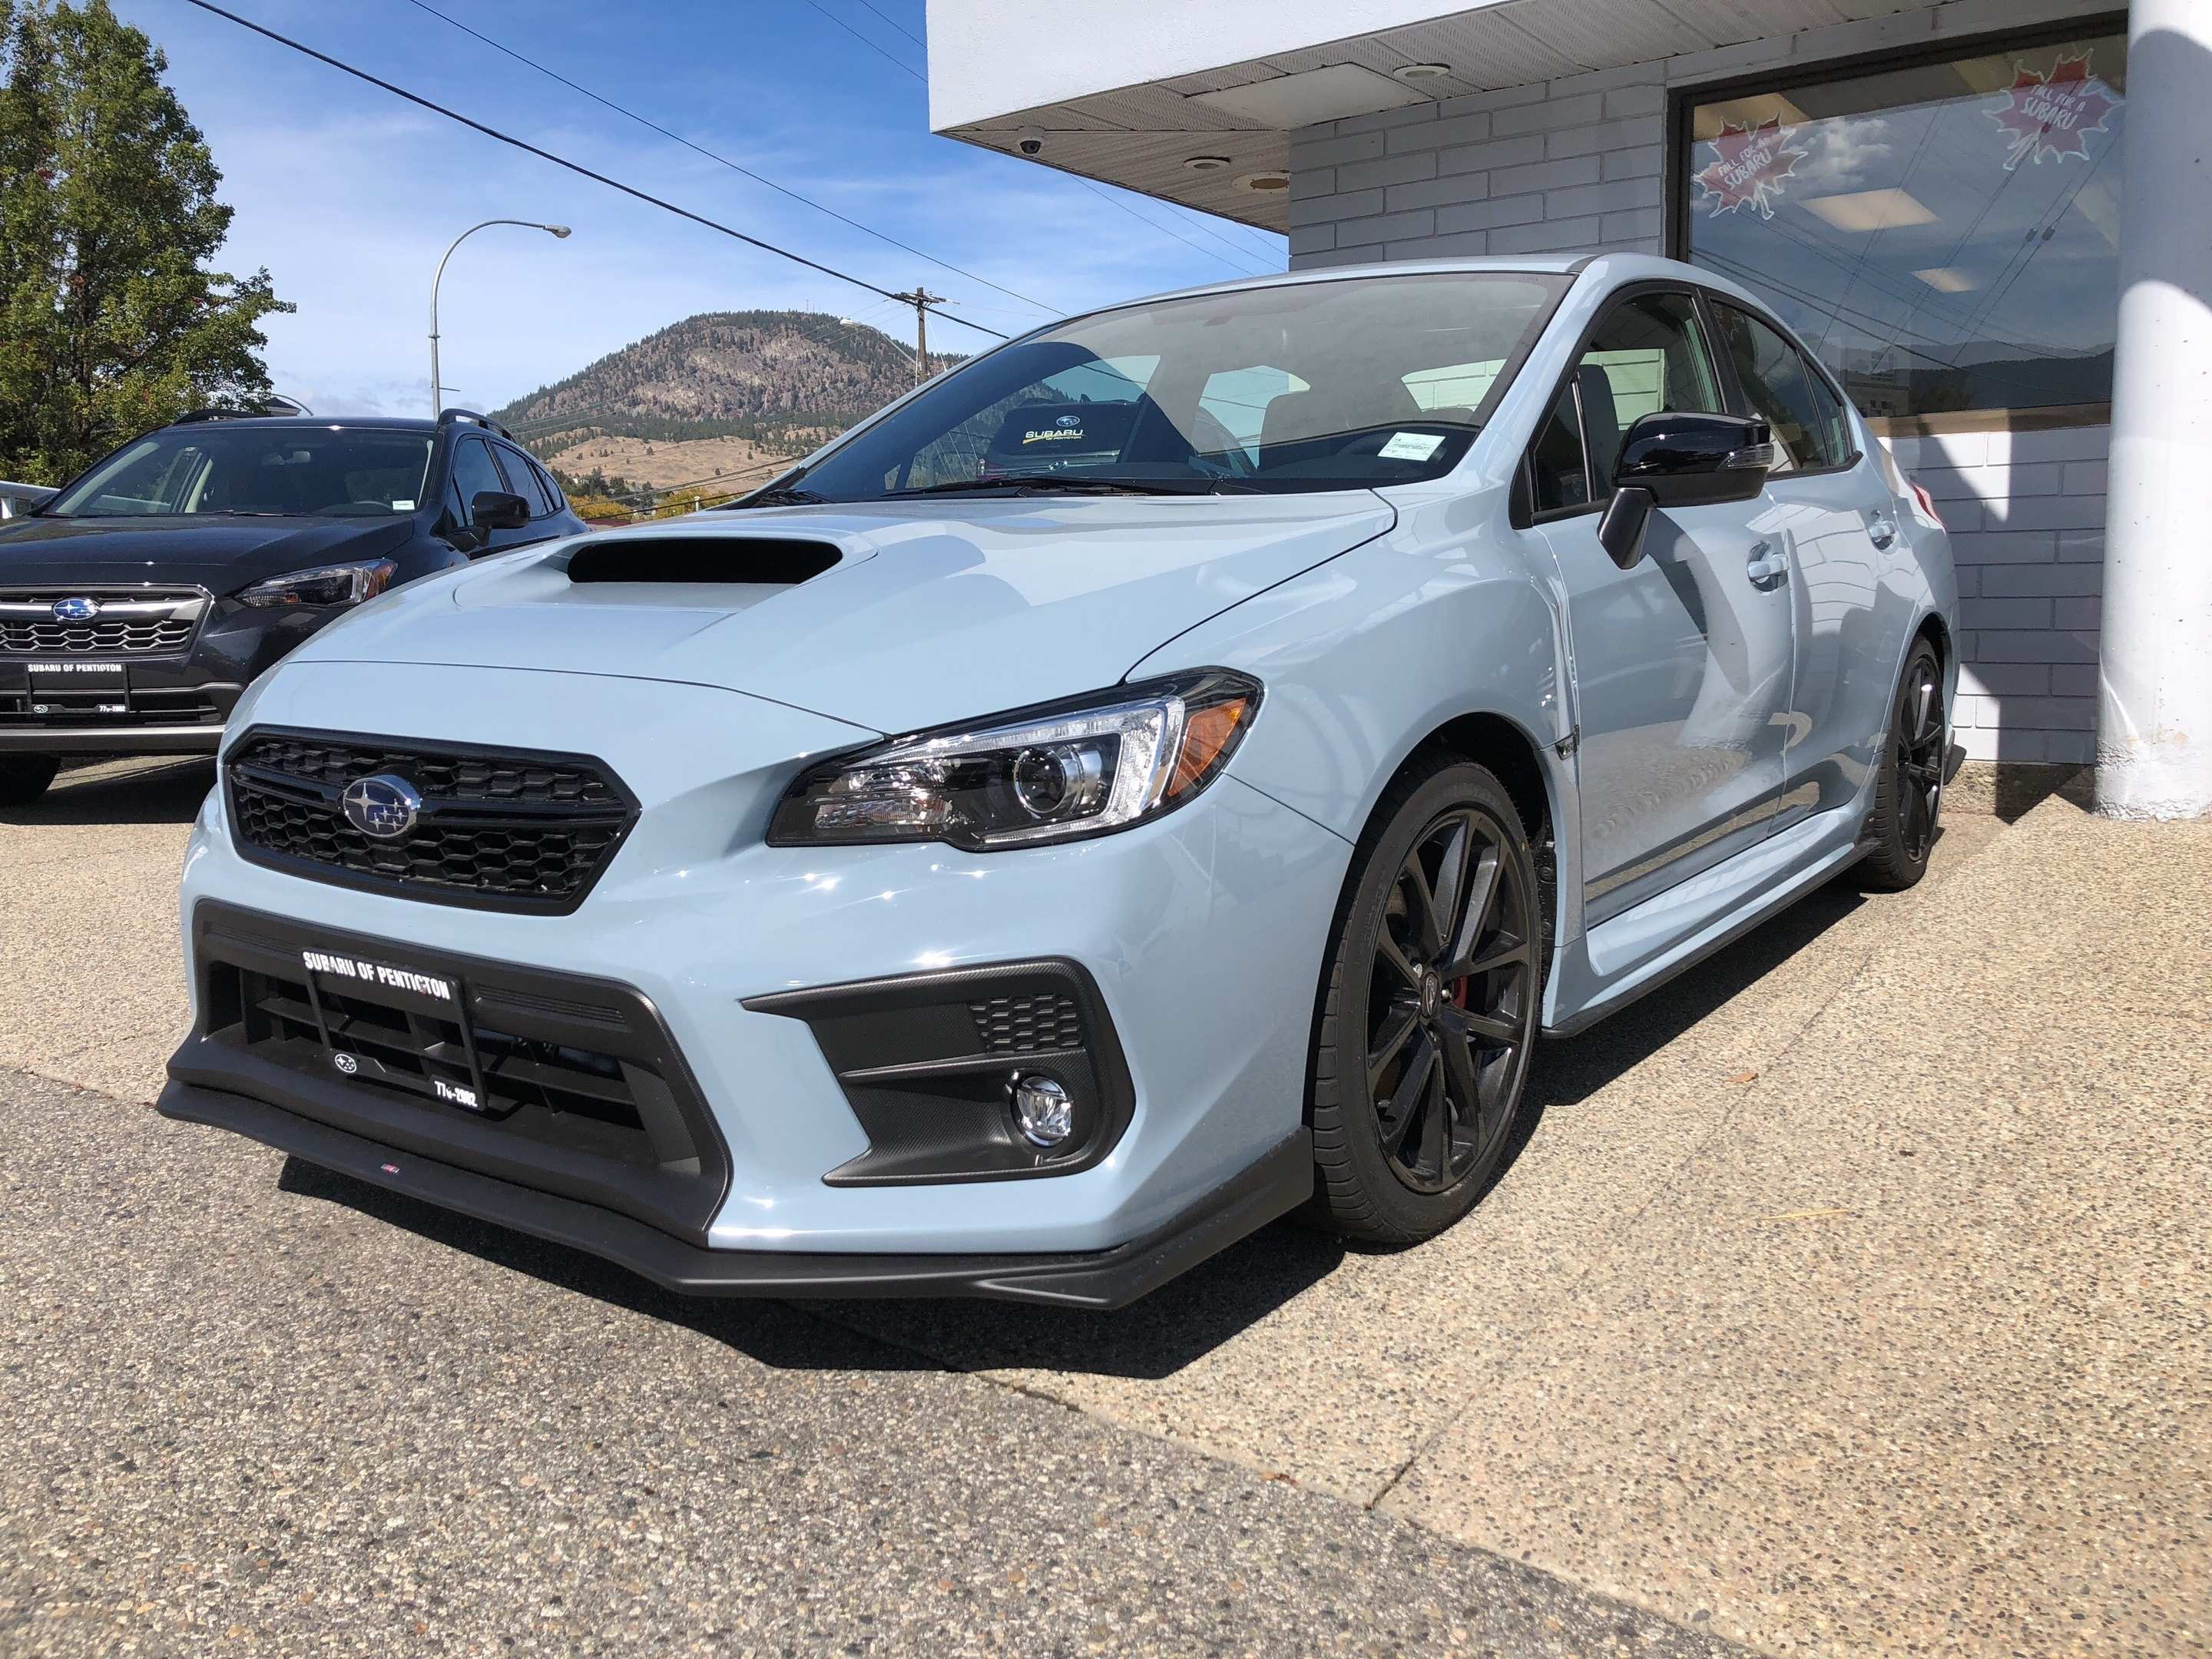 18 Best Review 2019 Subaru Raiu Overview with 2019 Subaru Raiu